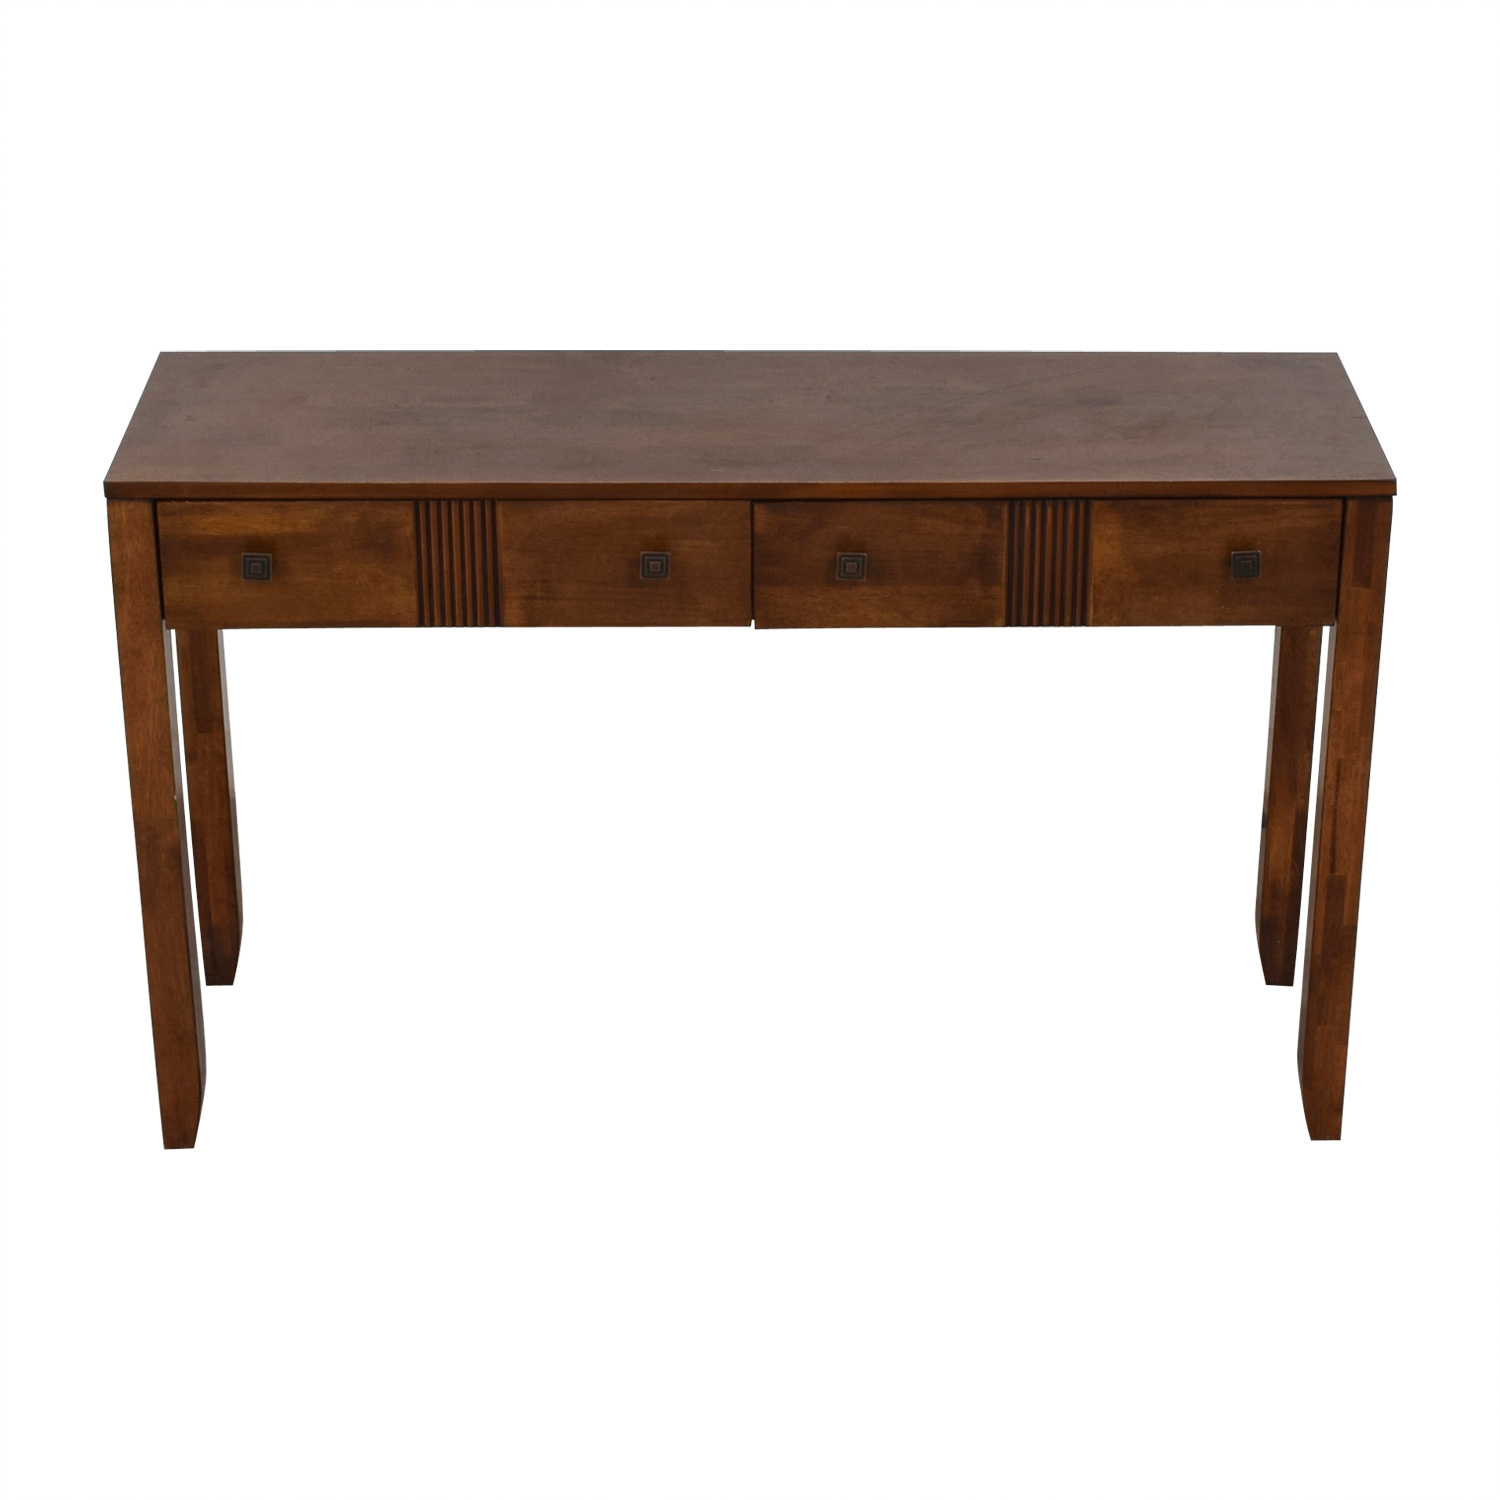 Two-Drawer Console Table / Tables